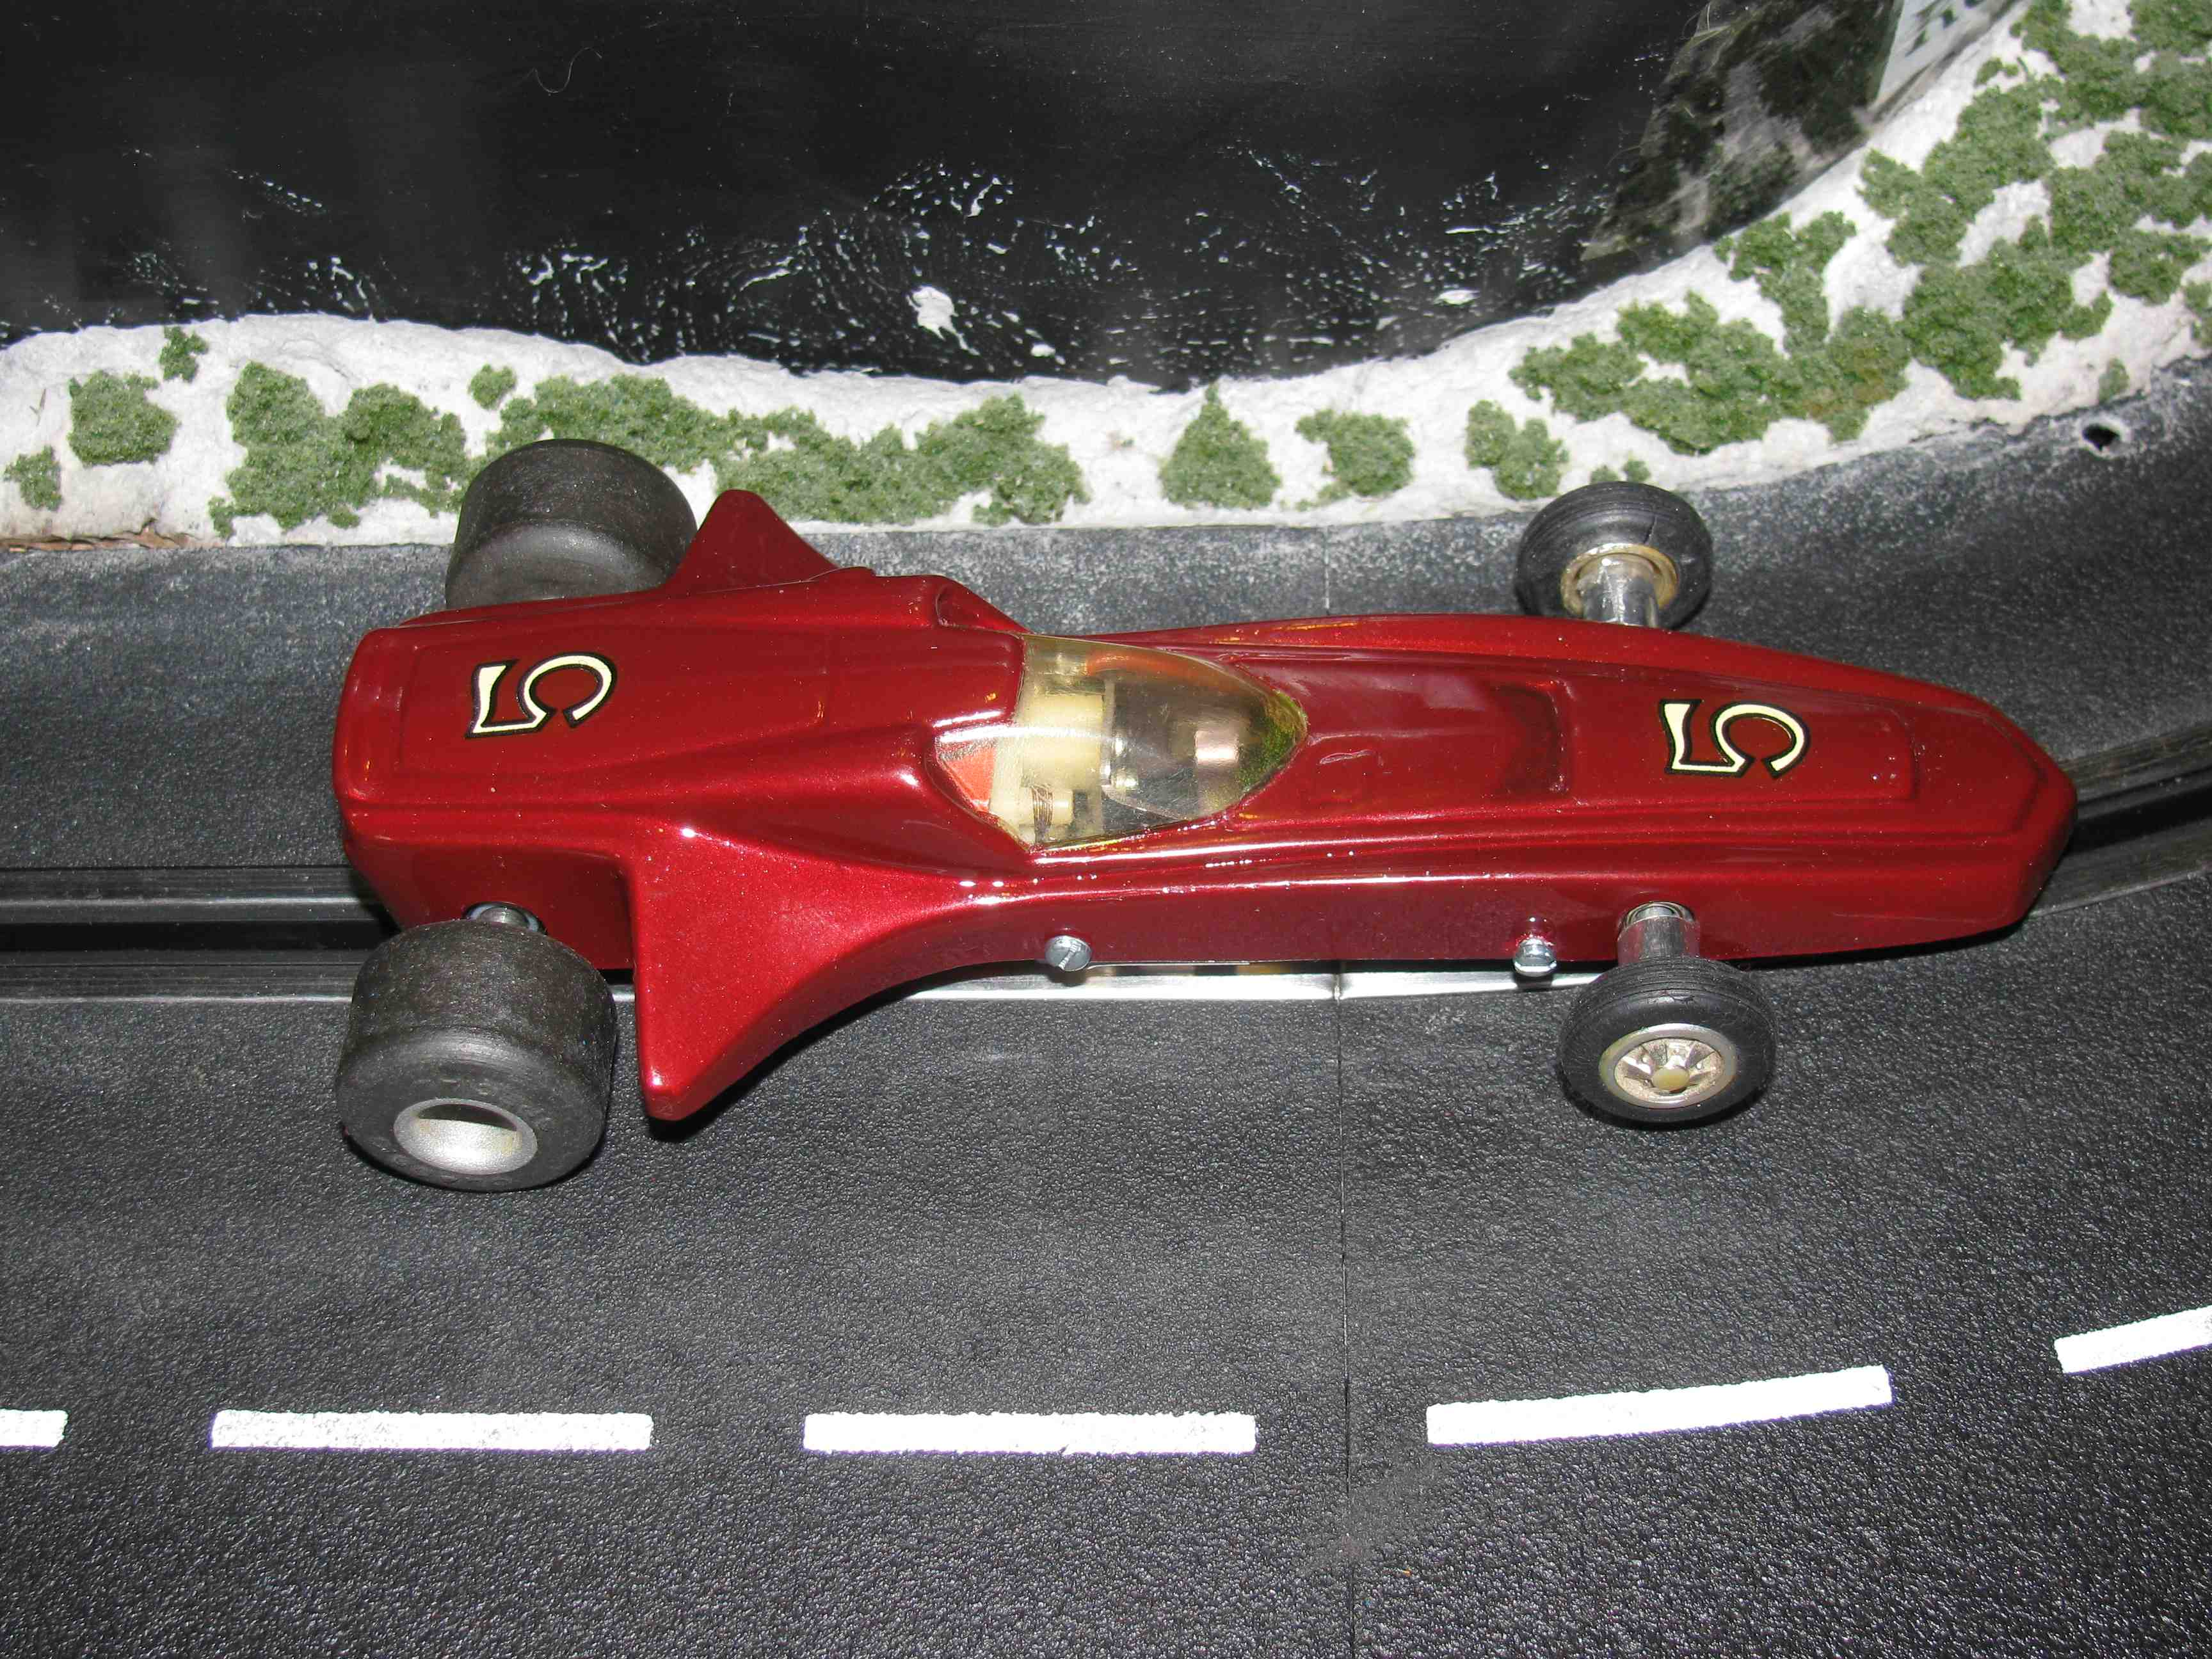 * SOLD * Classic Industry ASP Radical Red Racer 1/32 Scale Slot Car – Car #5